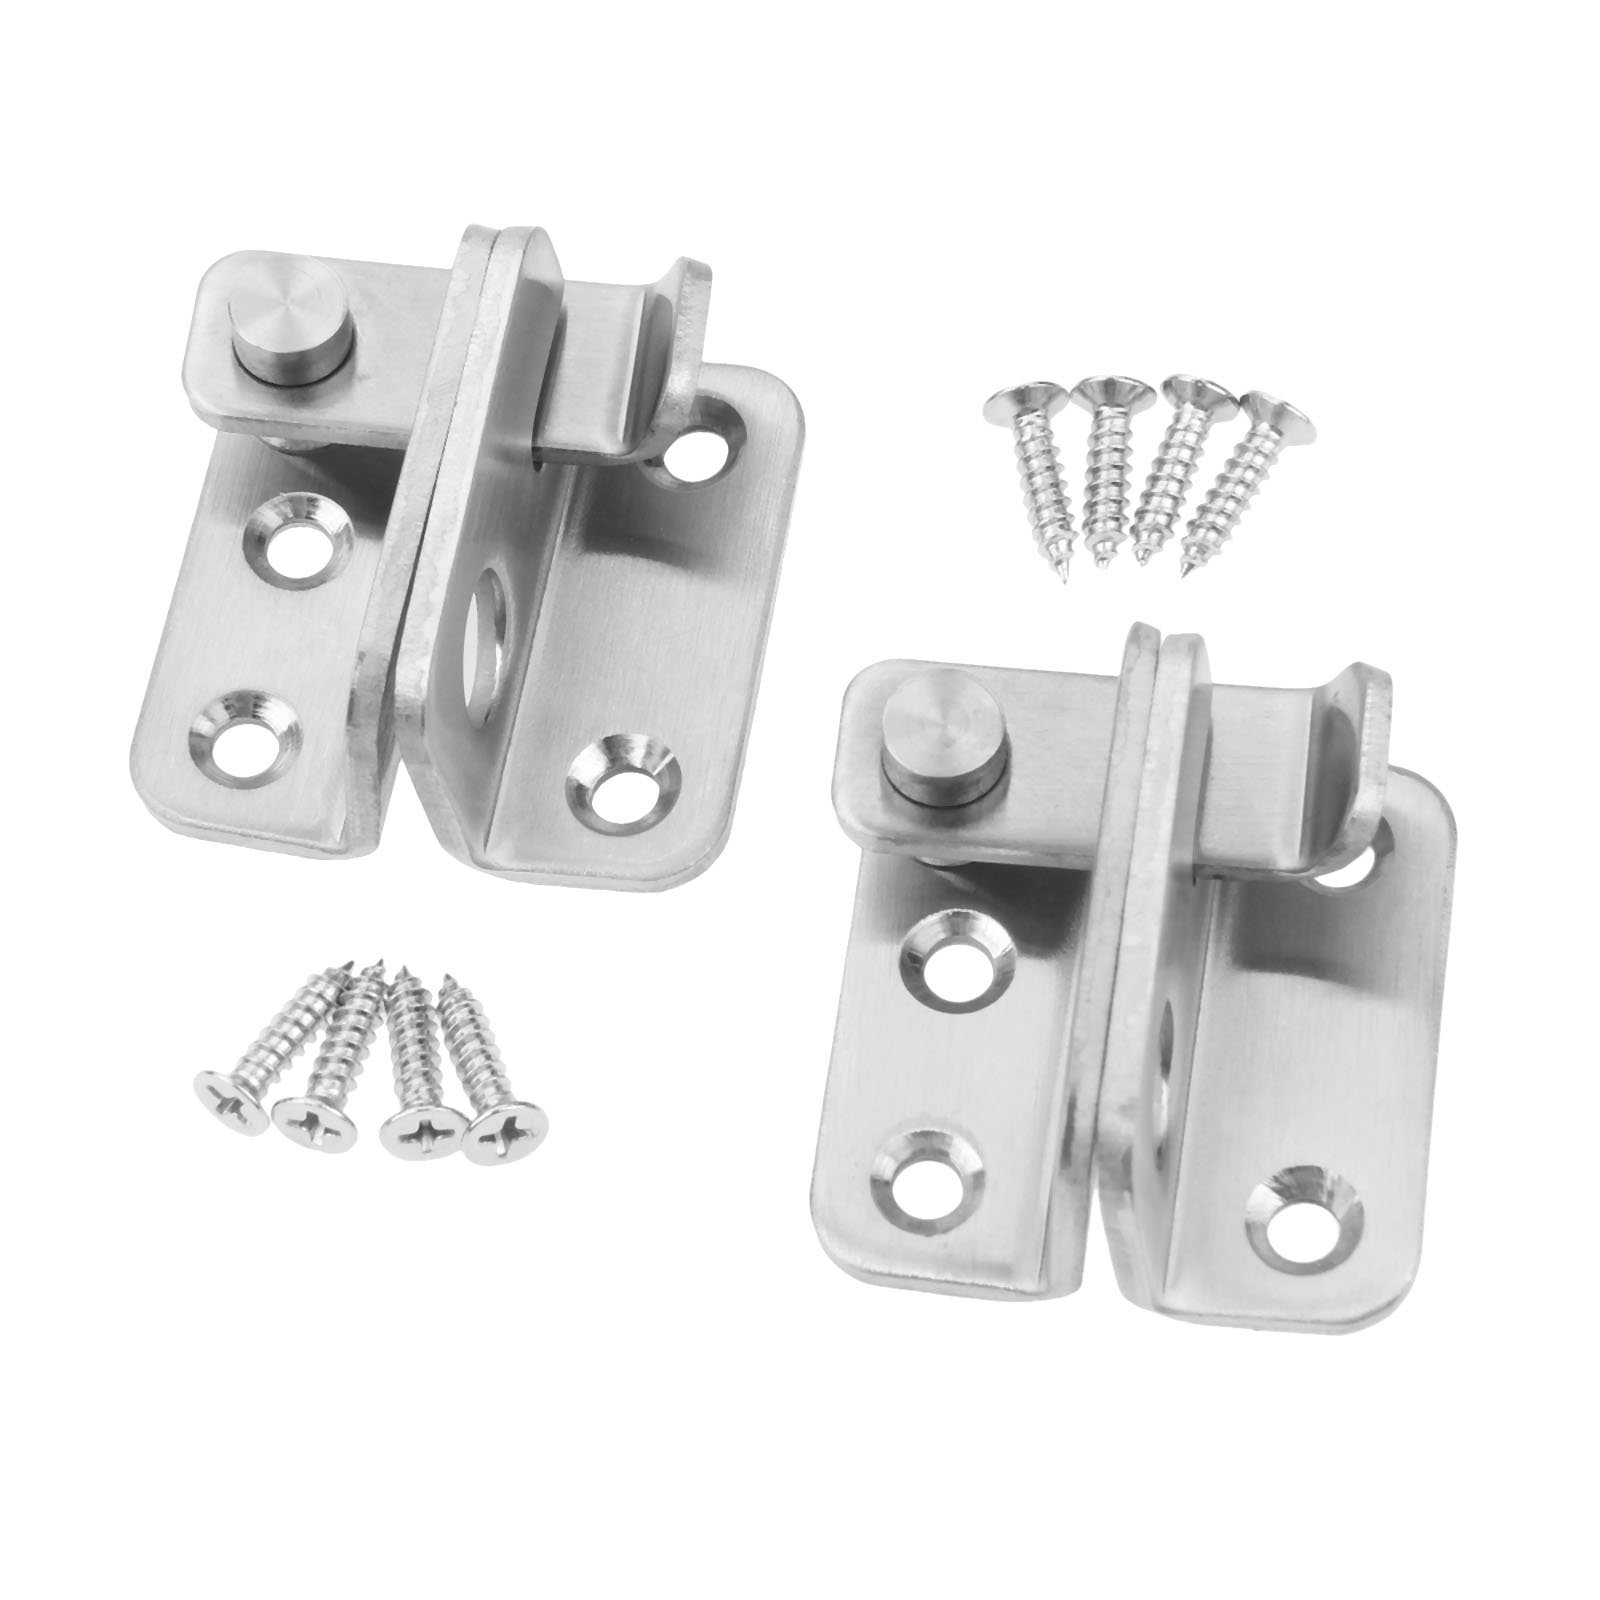 2Pcs Stainless Steel Slide Bolt Latch Gate Latches safety Door Lock-Left